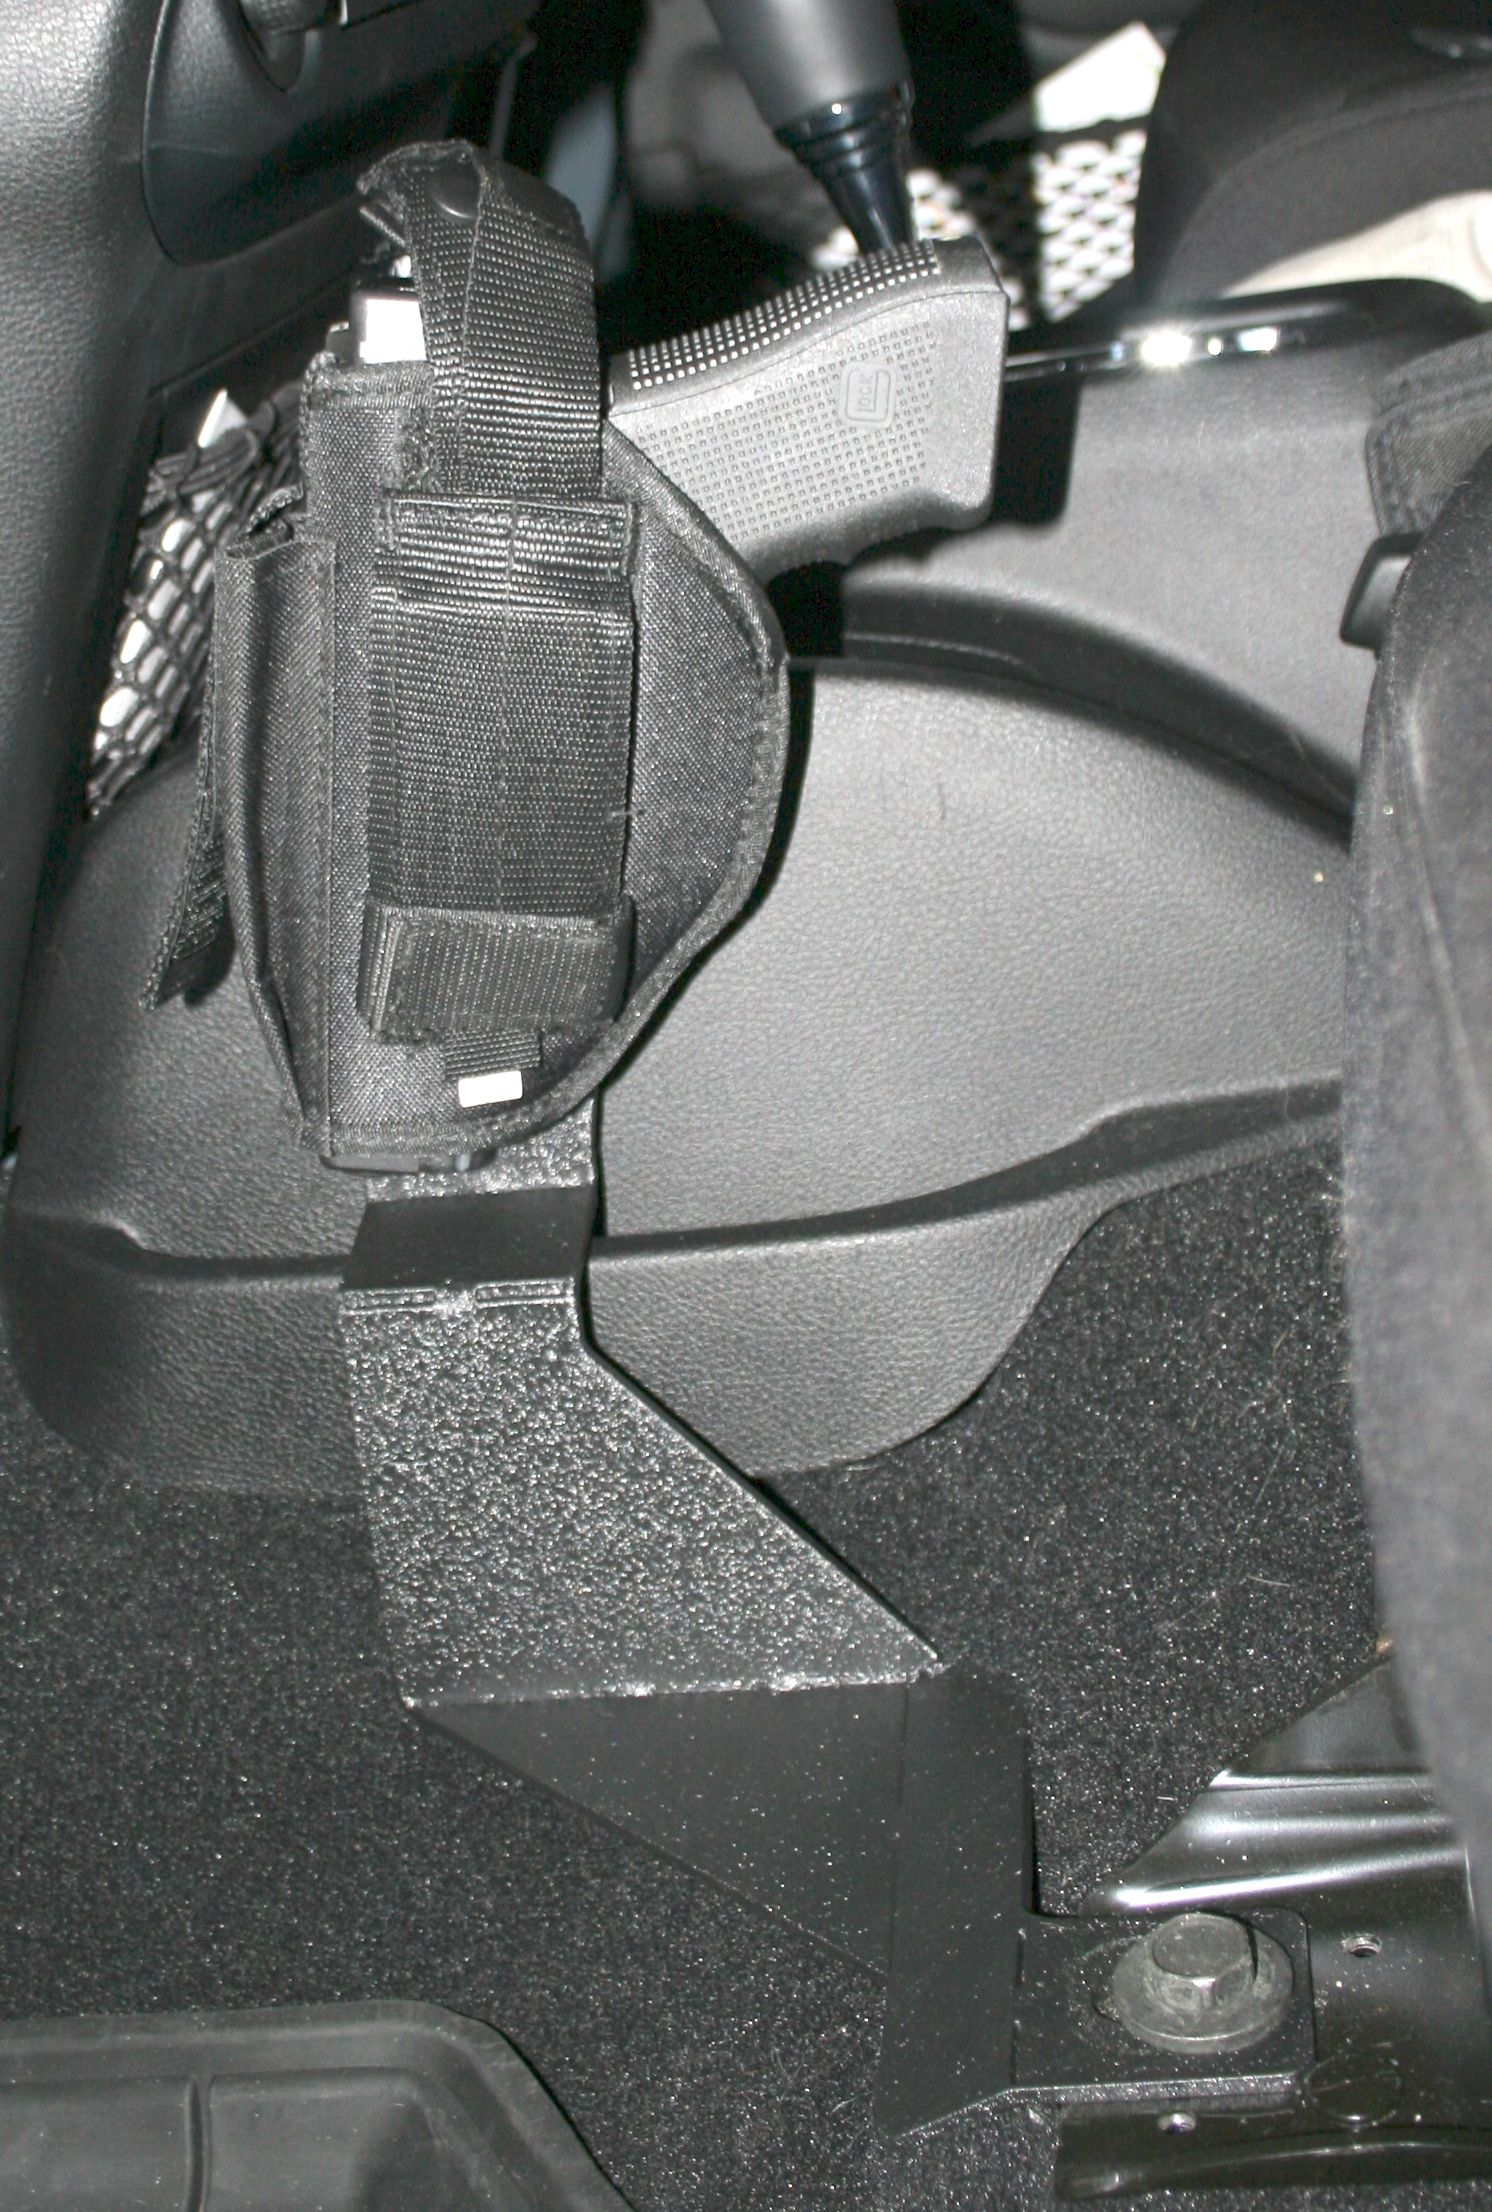 Condition Zero Pistol Mount For Jeep Wrangler Gear Review With